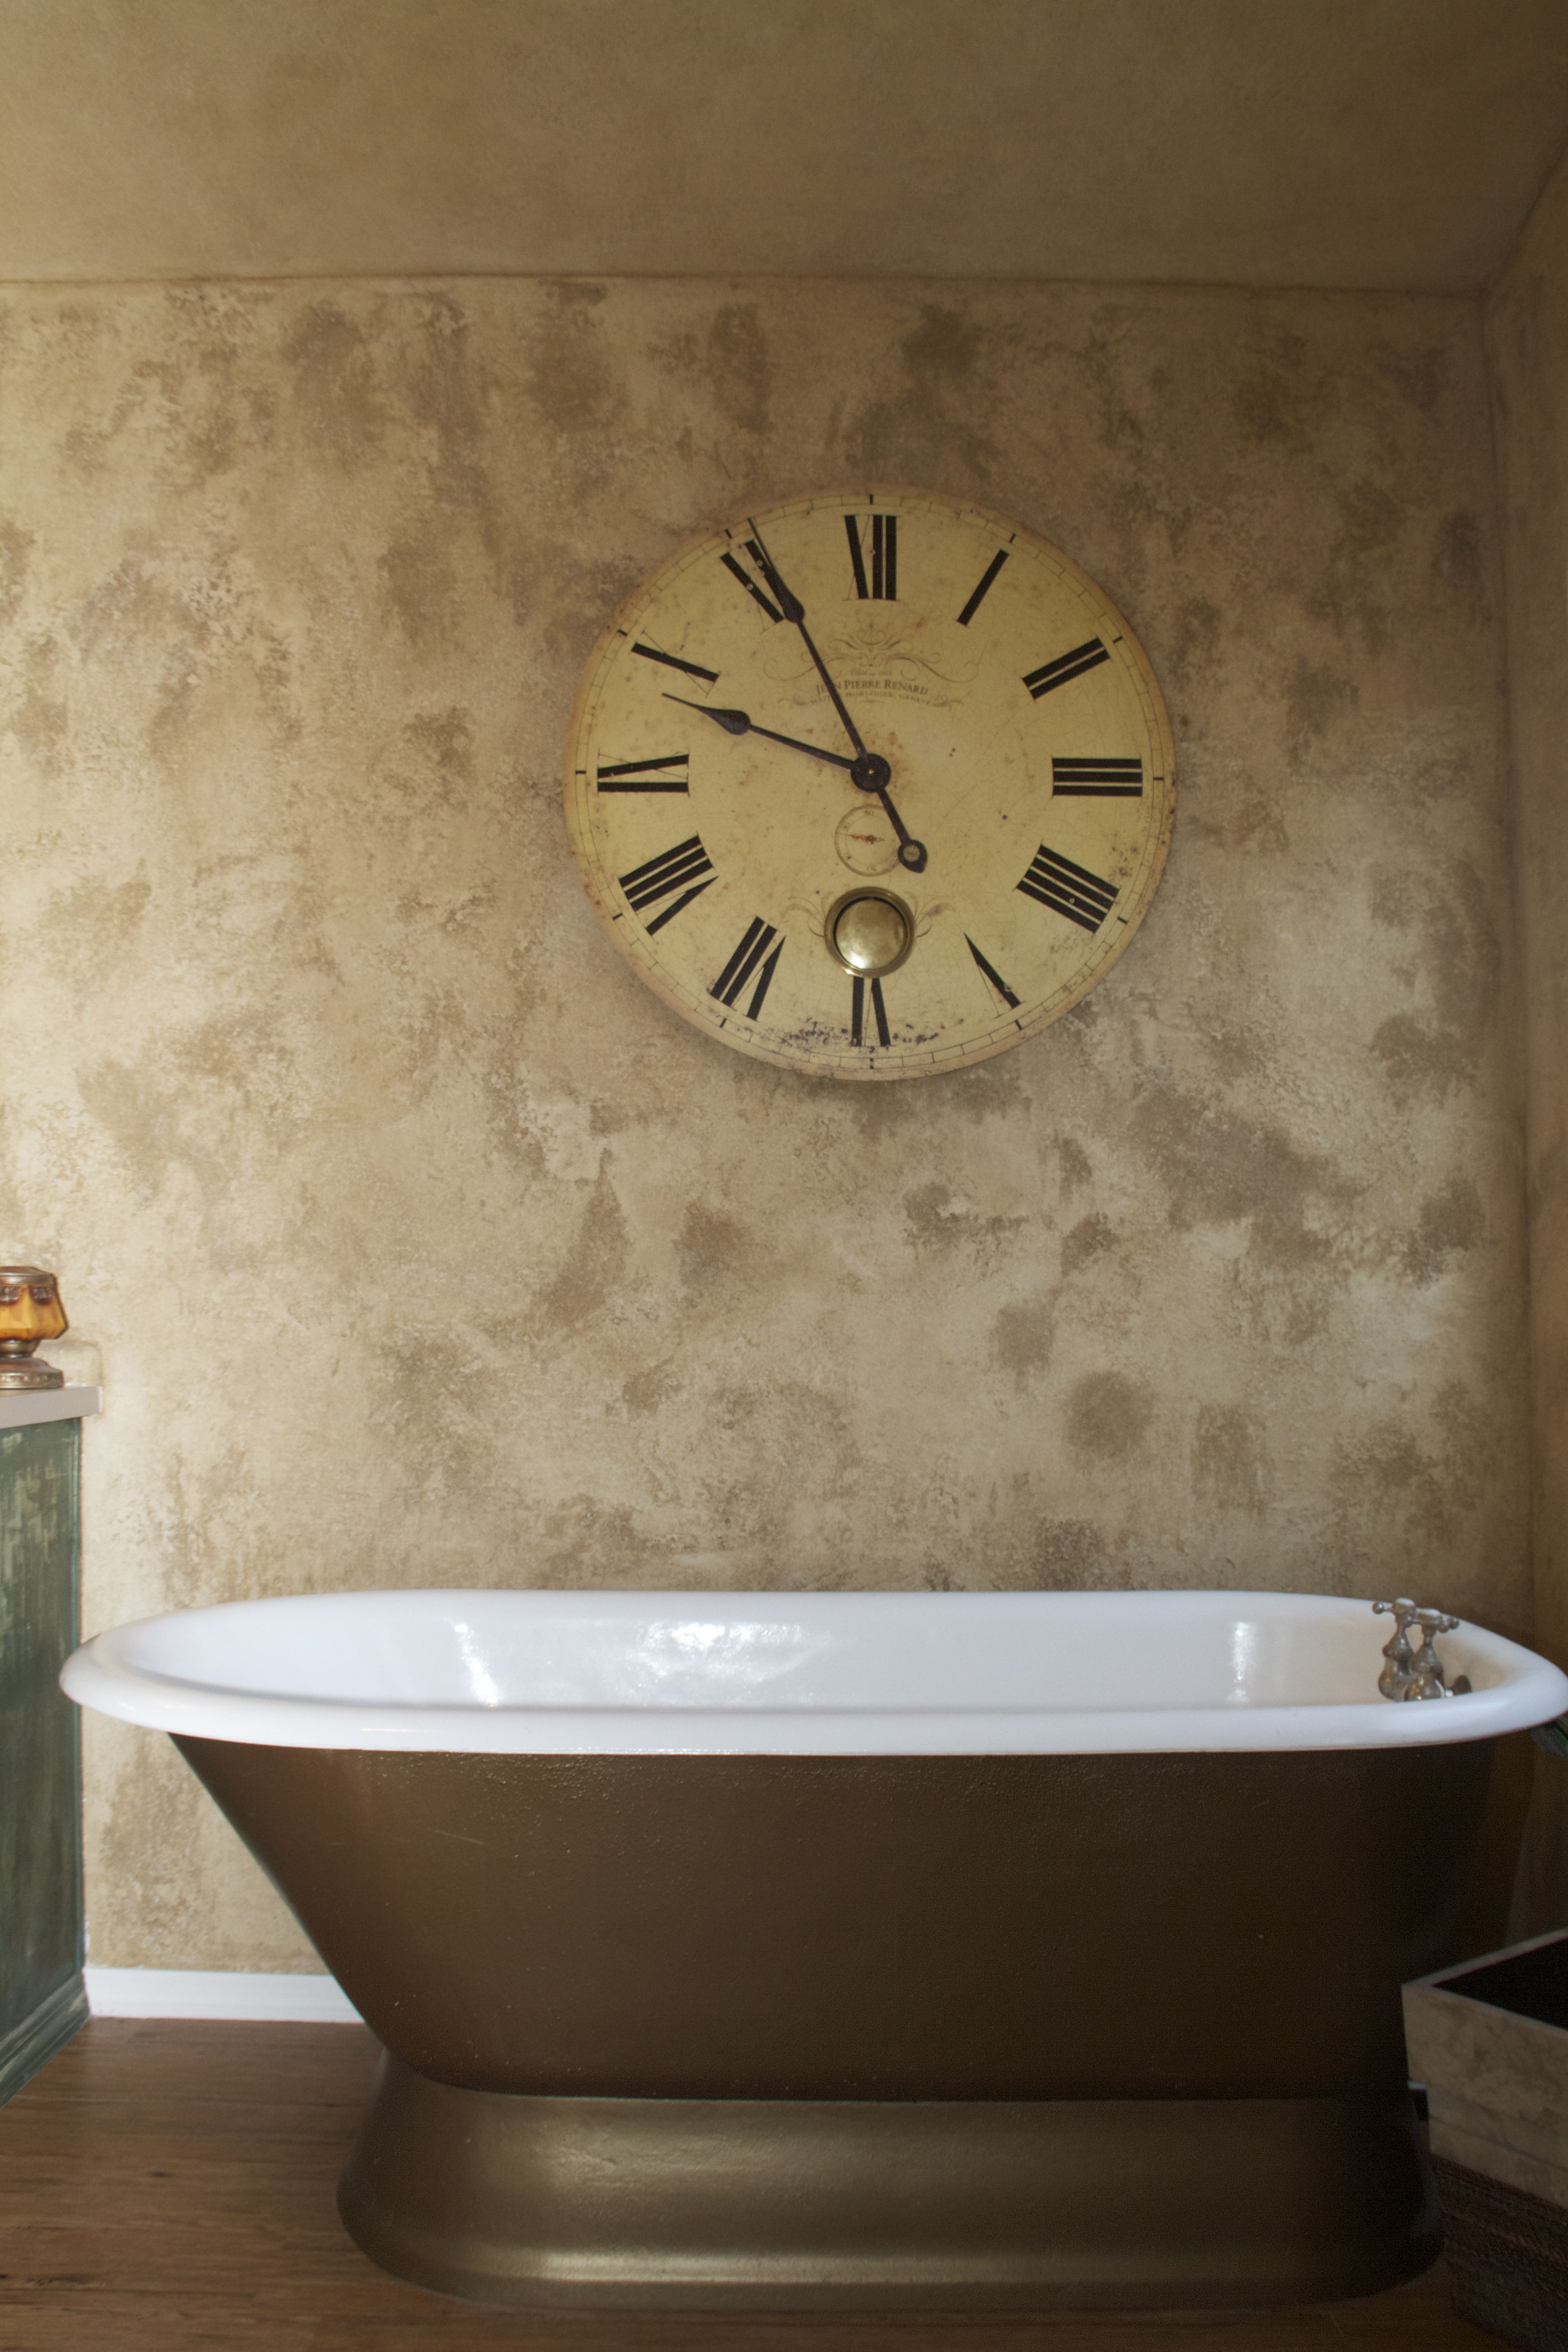 Bathroom Wall With Heavy Plaster And Old Cast Iron Tub